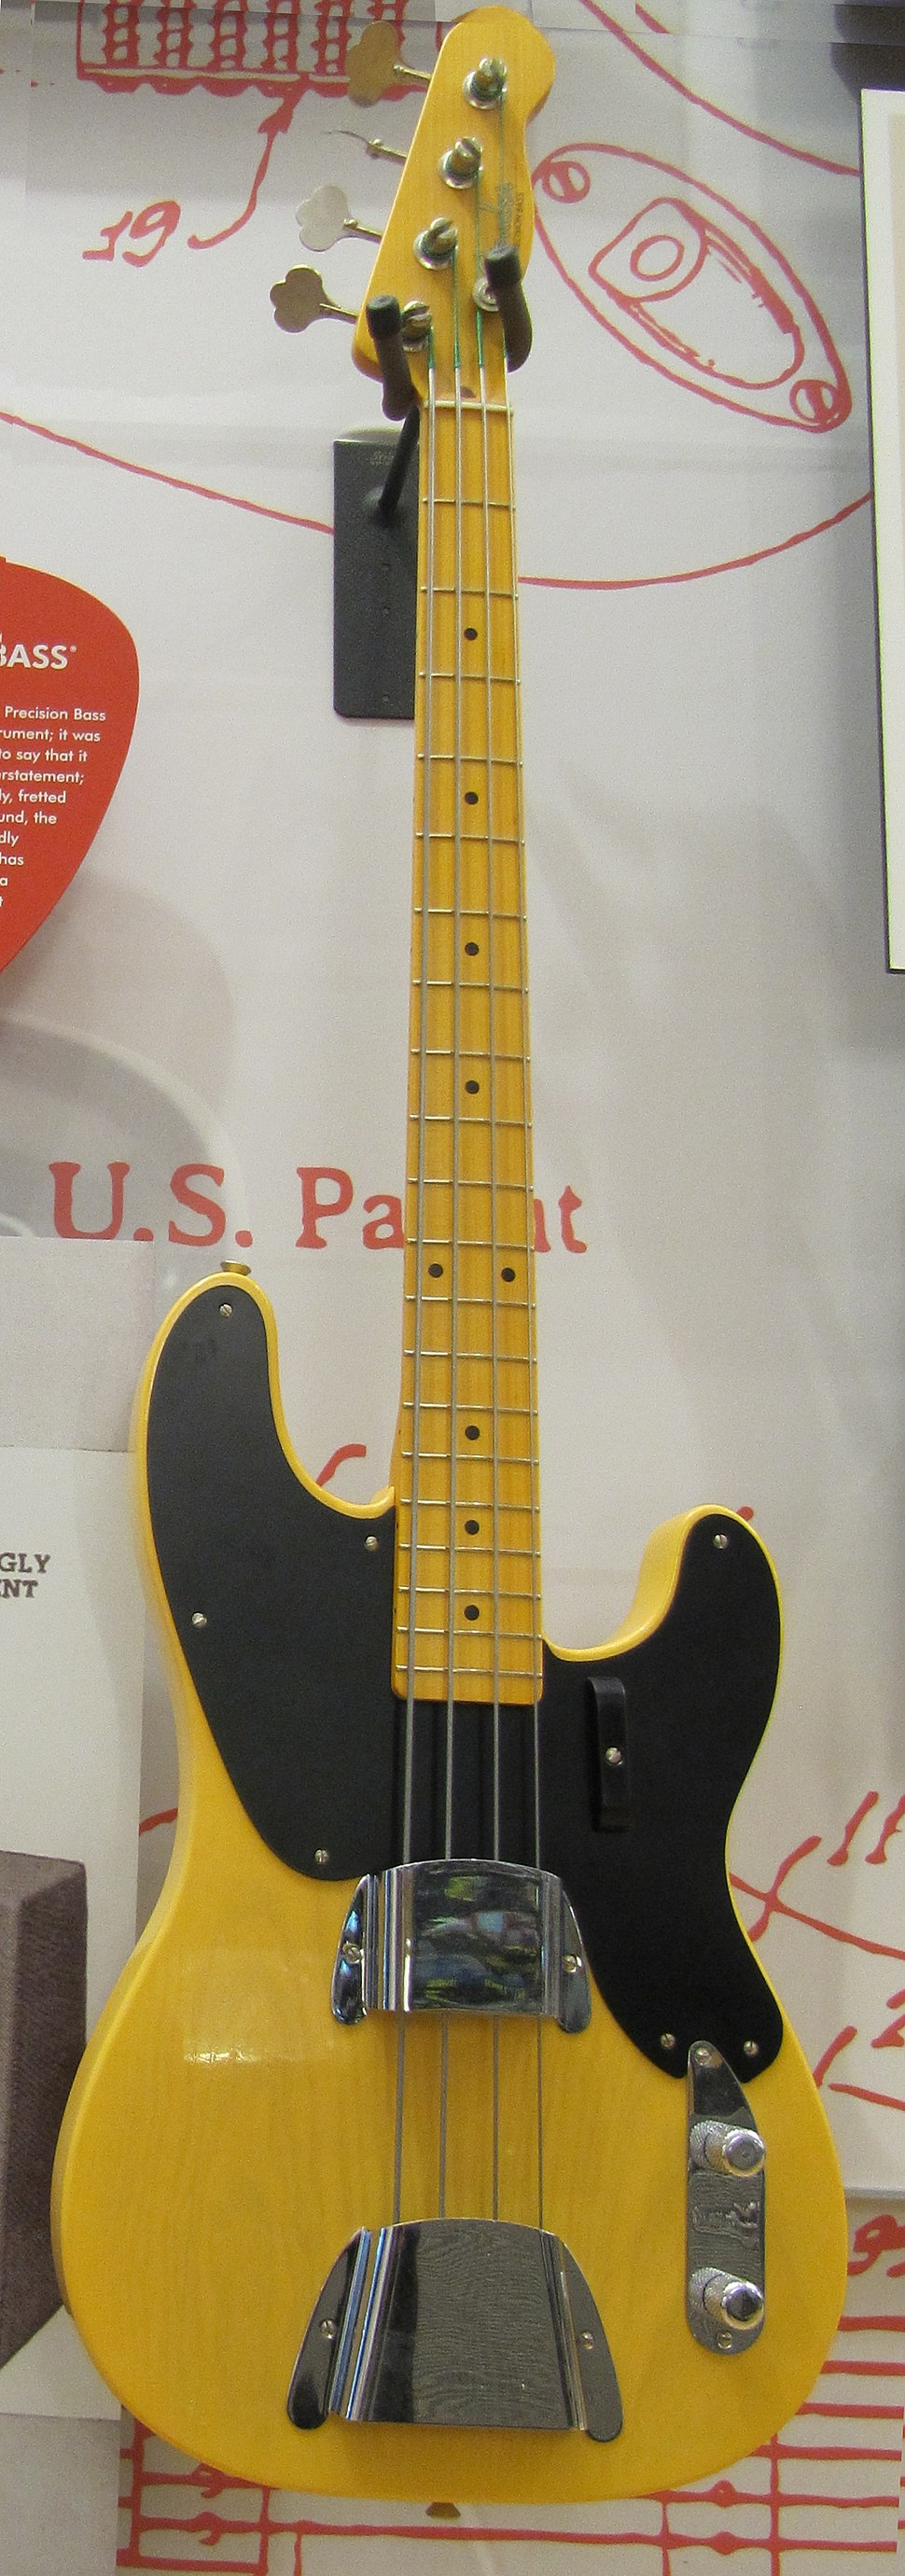 Fender %2751 Precision Bass, FGF museum